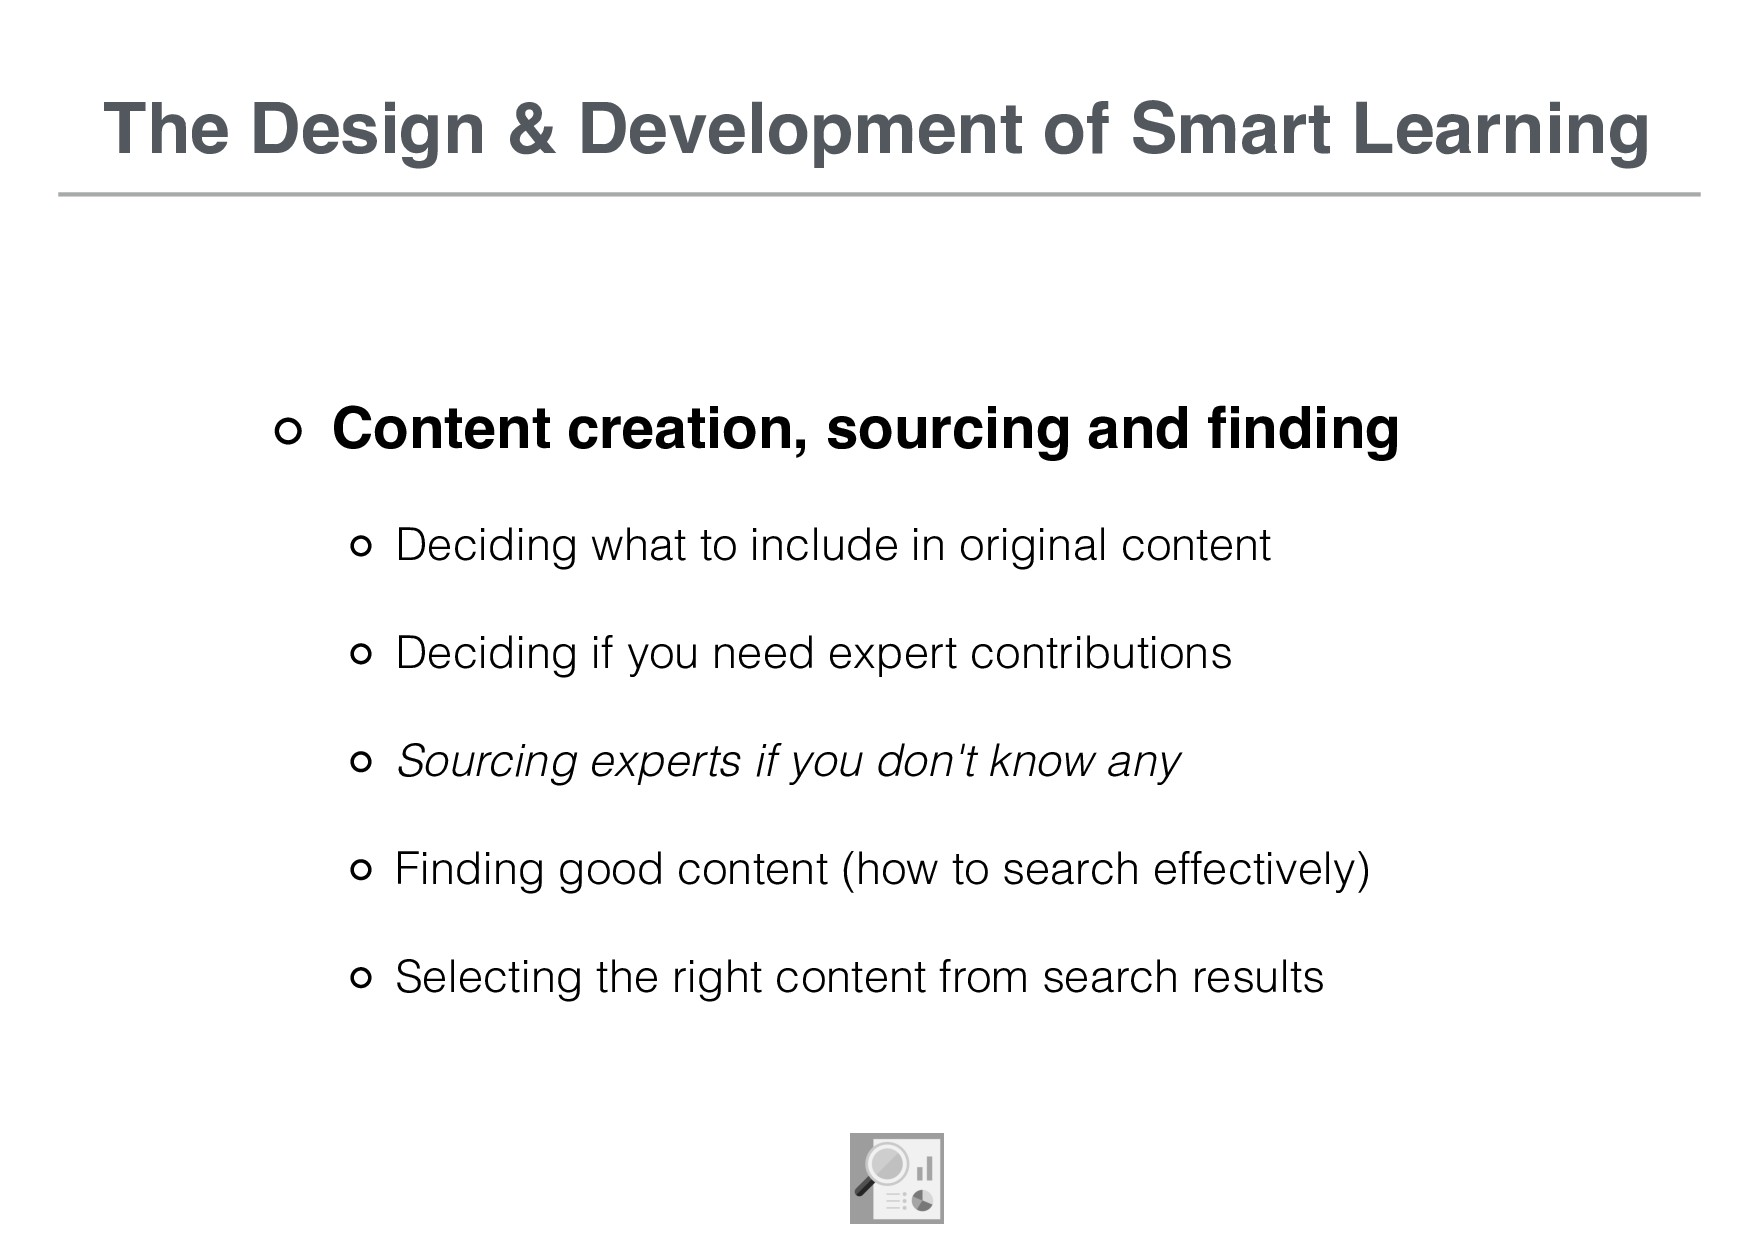 The Design & Development of Smart Learning Cont...